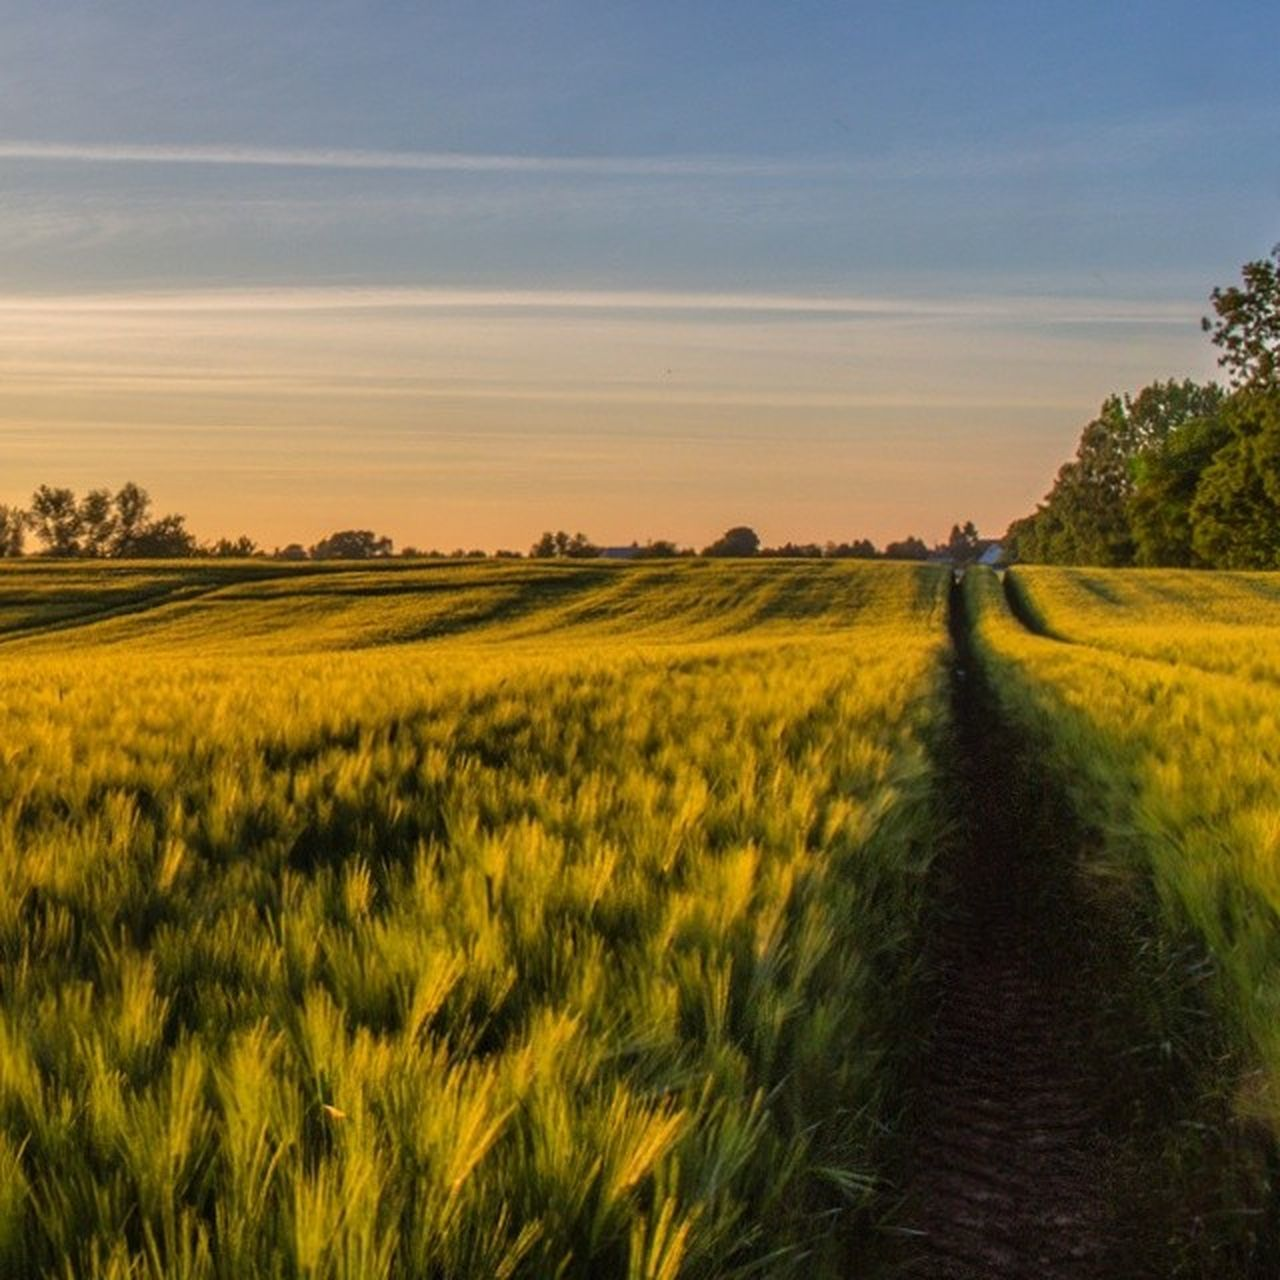 field, nature, landscape, beauty in nature, tranquil scene, scenics, growth, tranquility, grass, sky, tree, green color, no people, sunset, agriculture, outdoors, rural scene, yellow, day